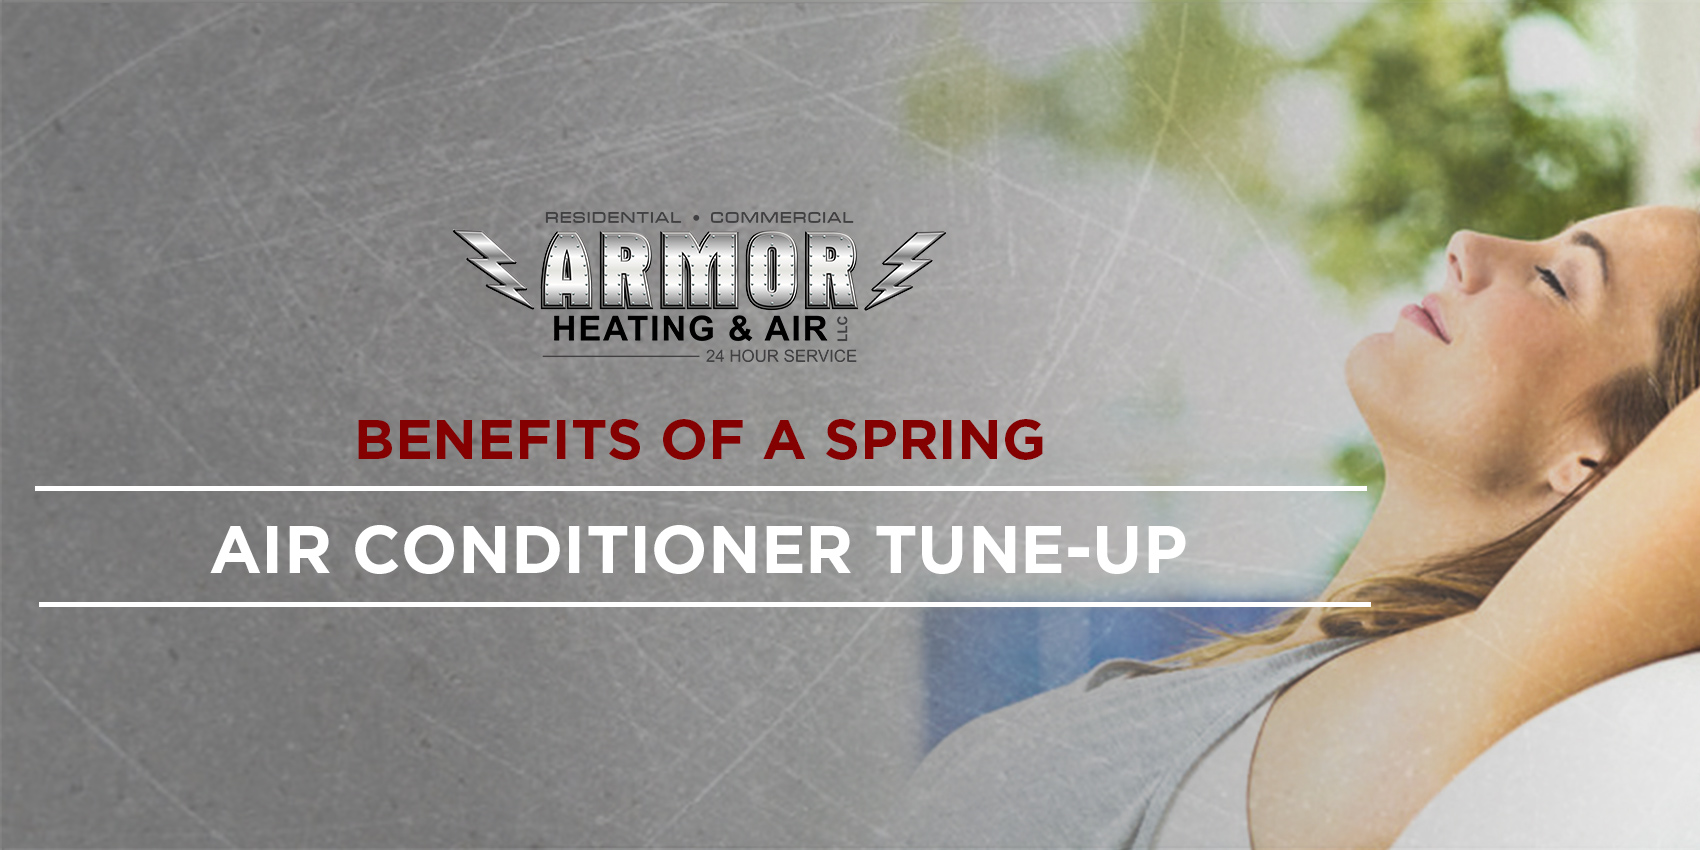 Benefits of a Spring Air Conditioner Tune-Up